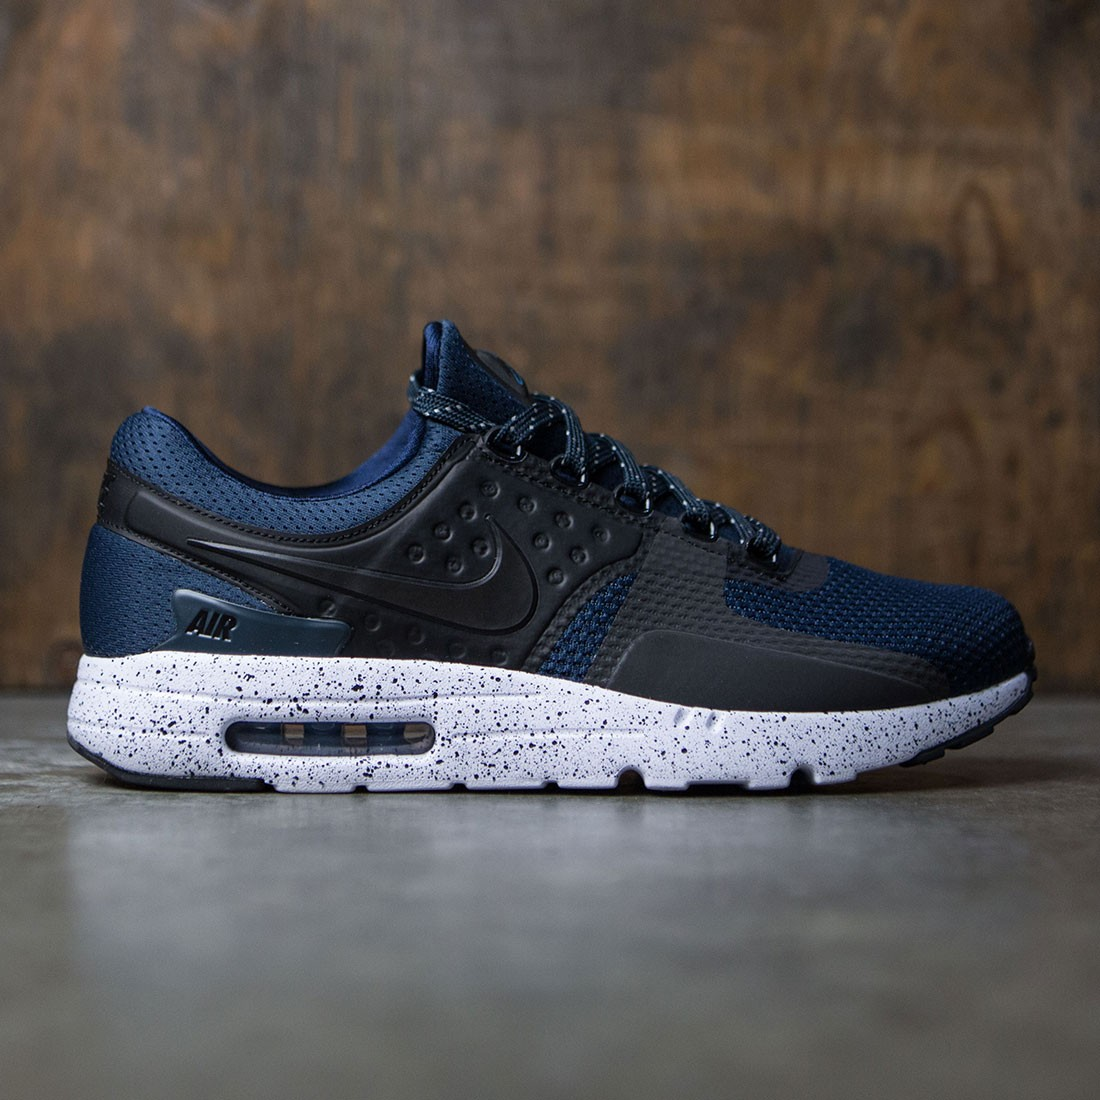 826f0ada98 ... sale nike men air max zero premium navy armory navy black white  industrial blue e3c92 f7ea1